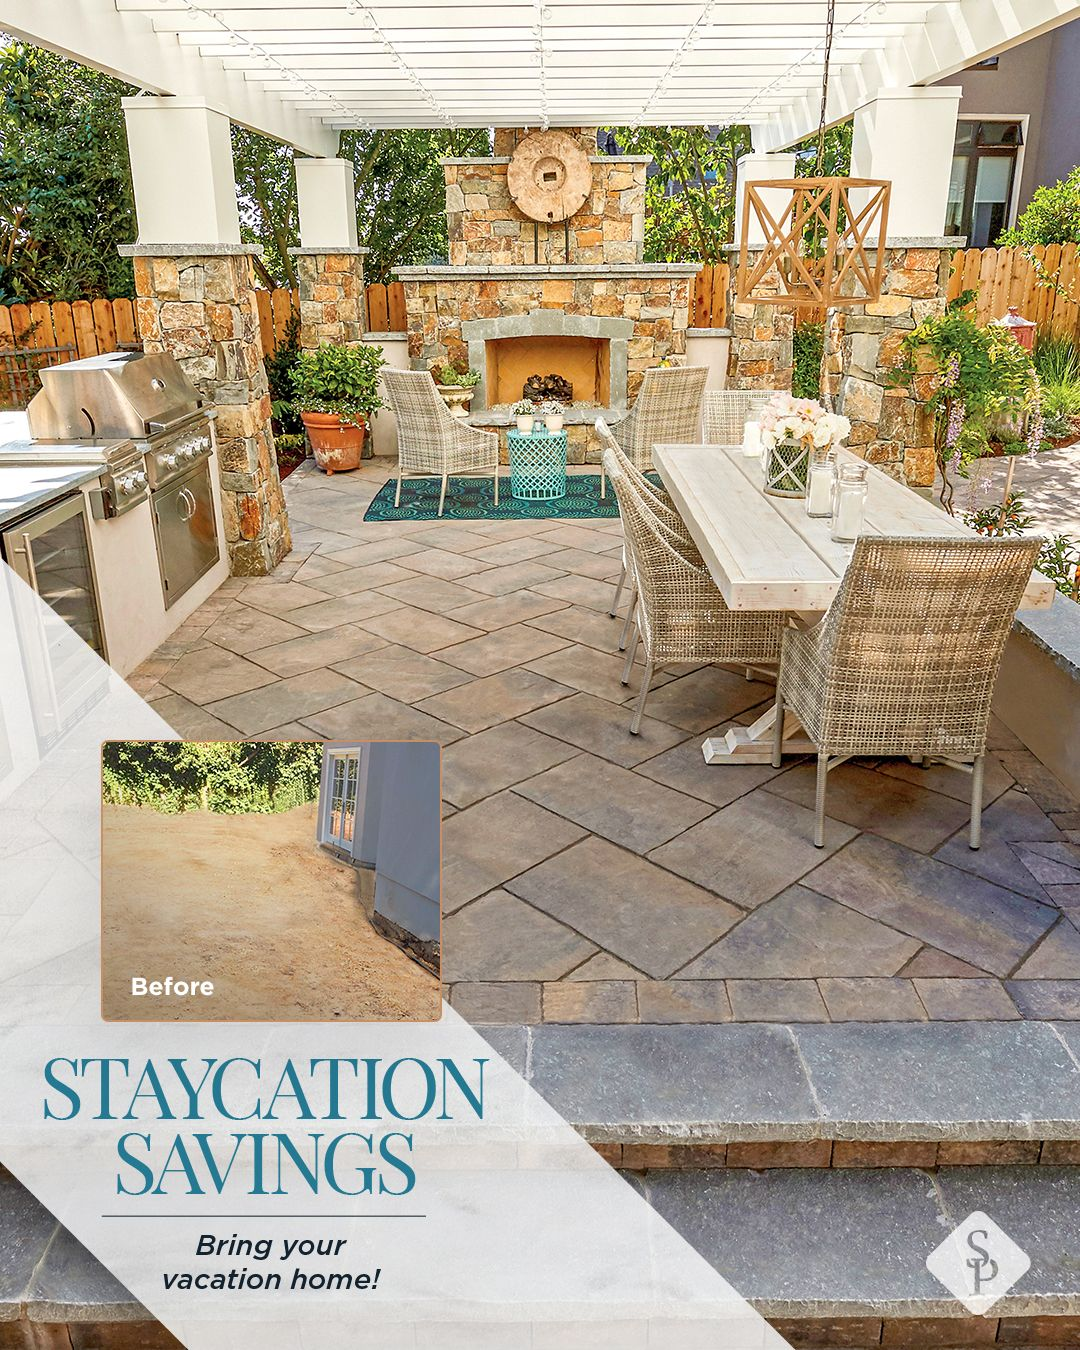 Bring Your Vacation Home In 2020 Backyard Patio Designs Romantic Backyard Backyard Patio